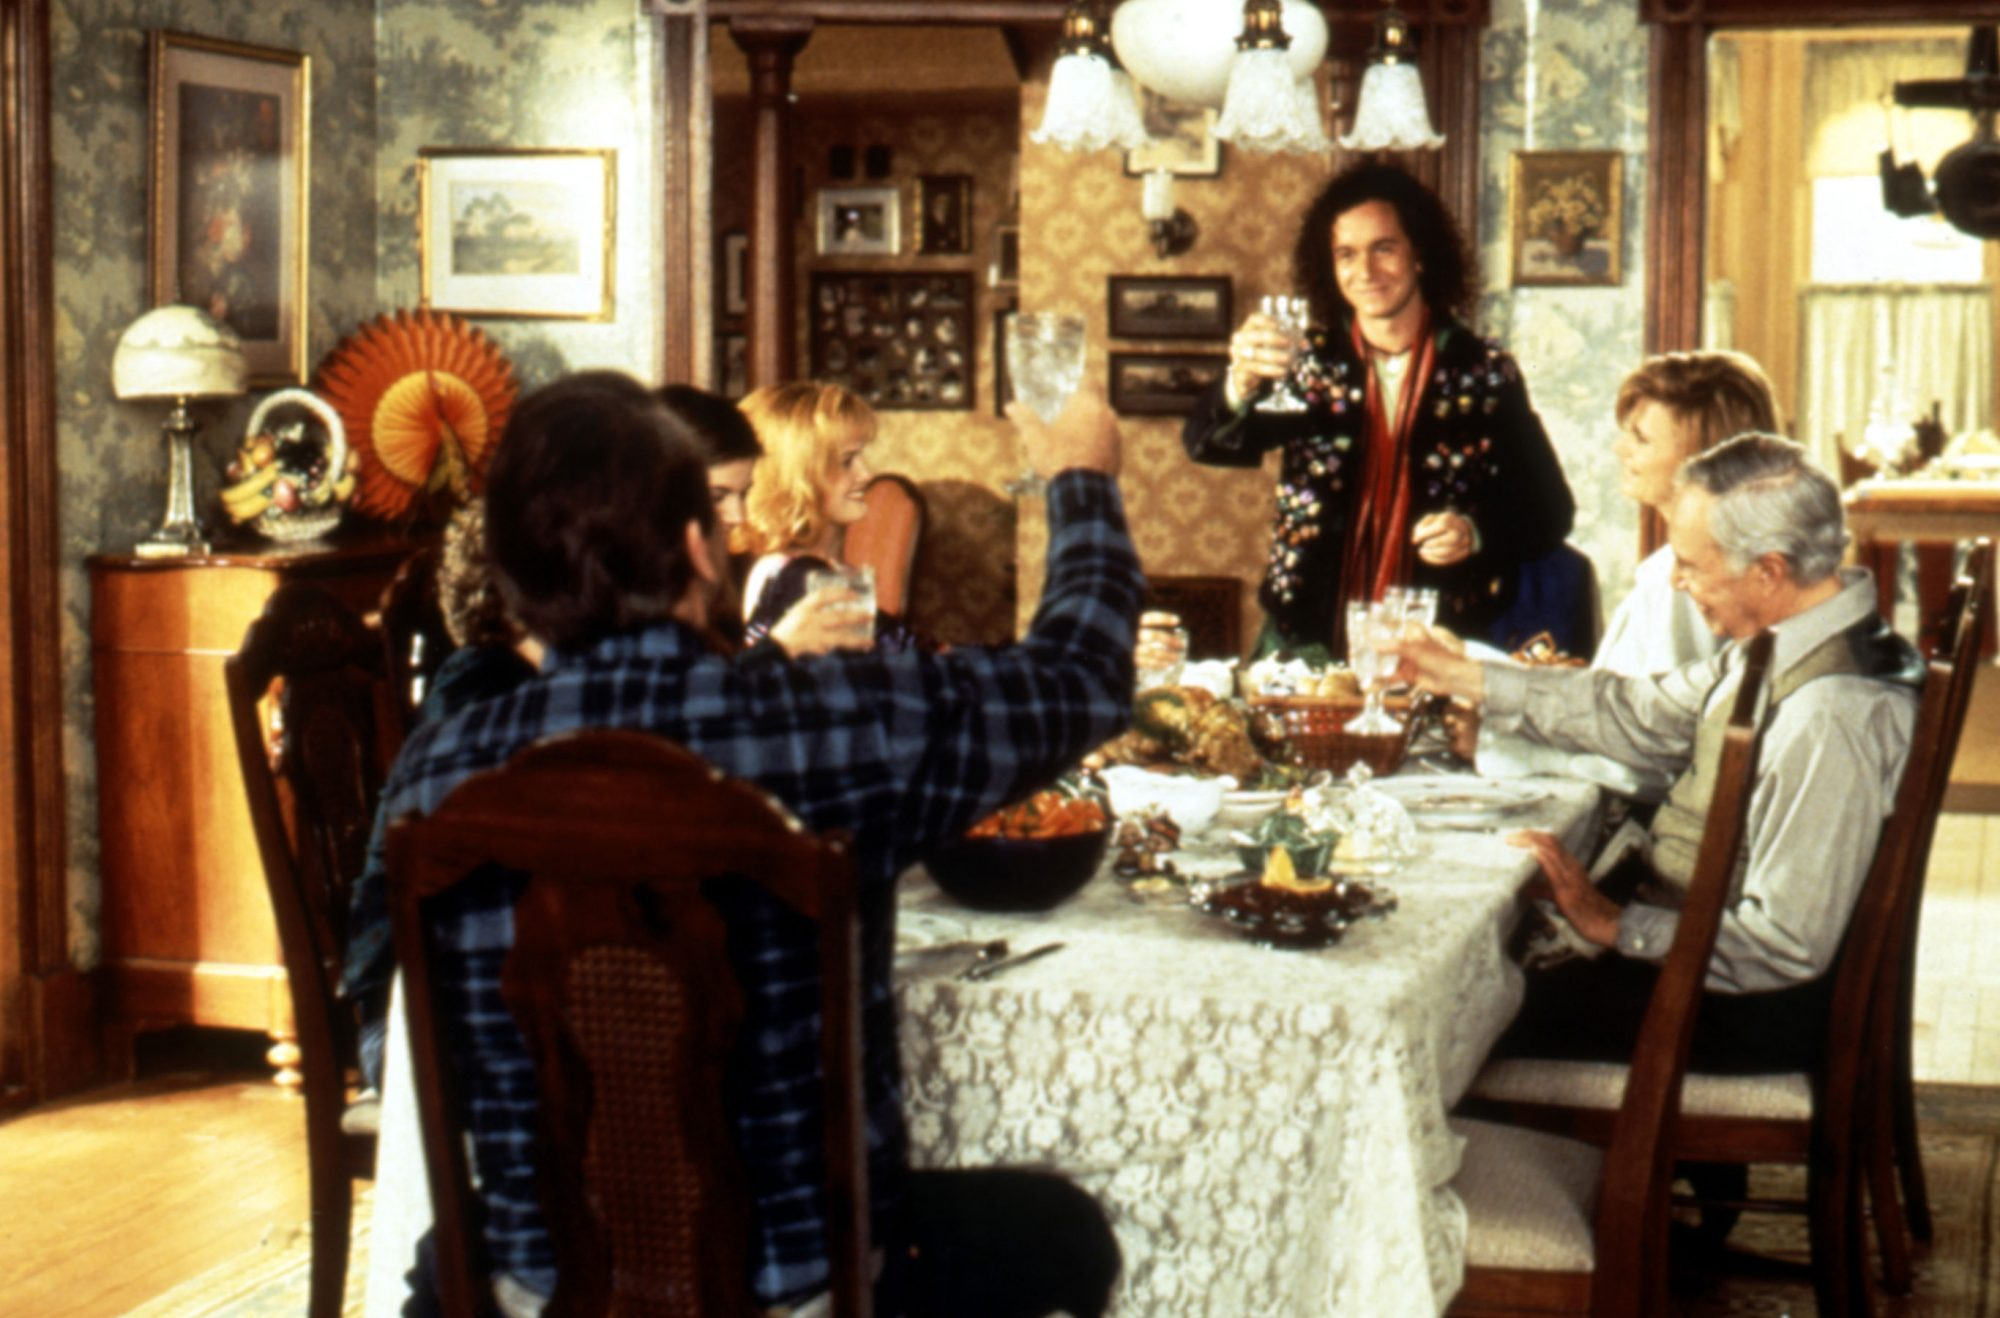 SON IN LAW, (clockwise from center): Pauly Shore, Cindy Pickett, Mason Adams, Lane Smith, Patrick Re